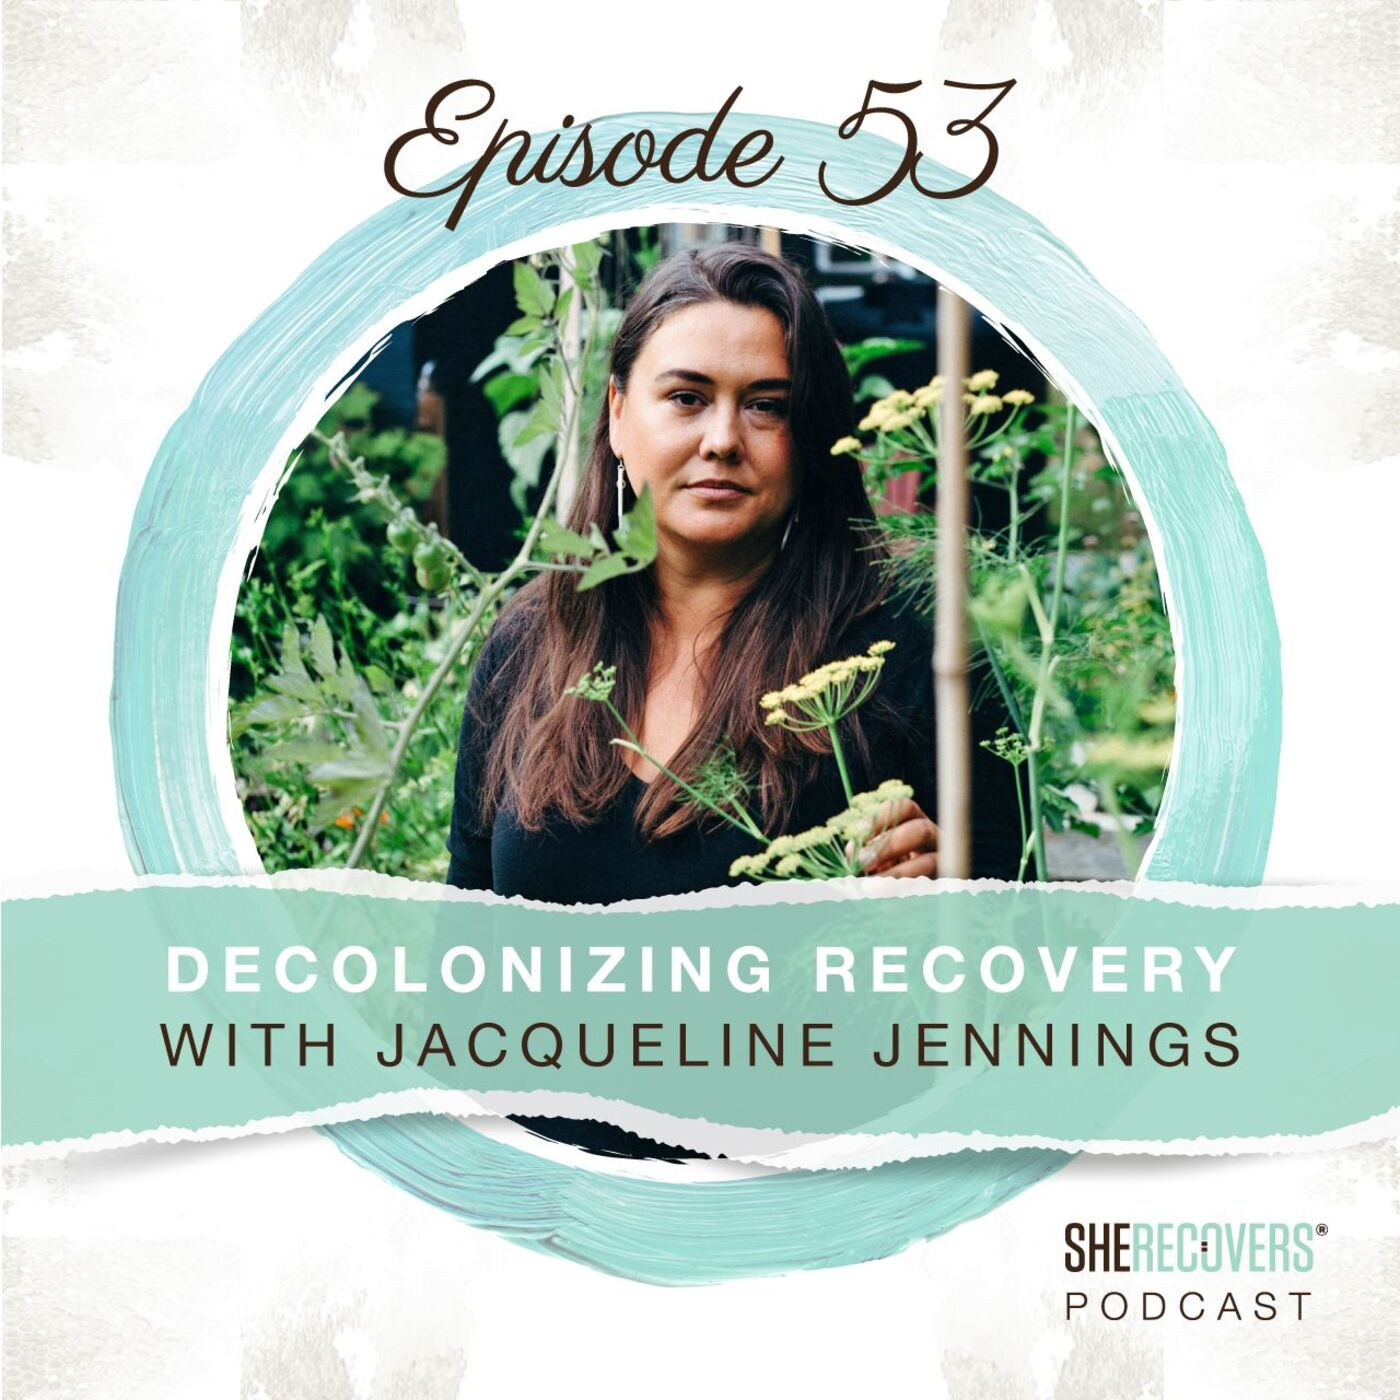 Episode 53: Decolonizing Recovery with Jacqueline Jennings